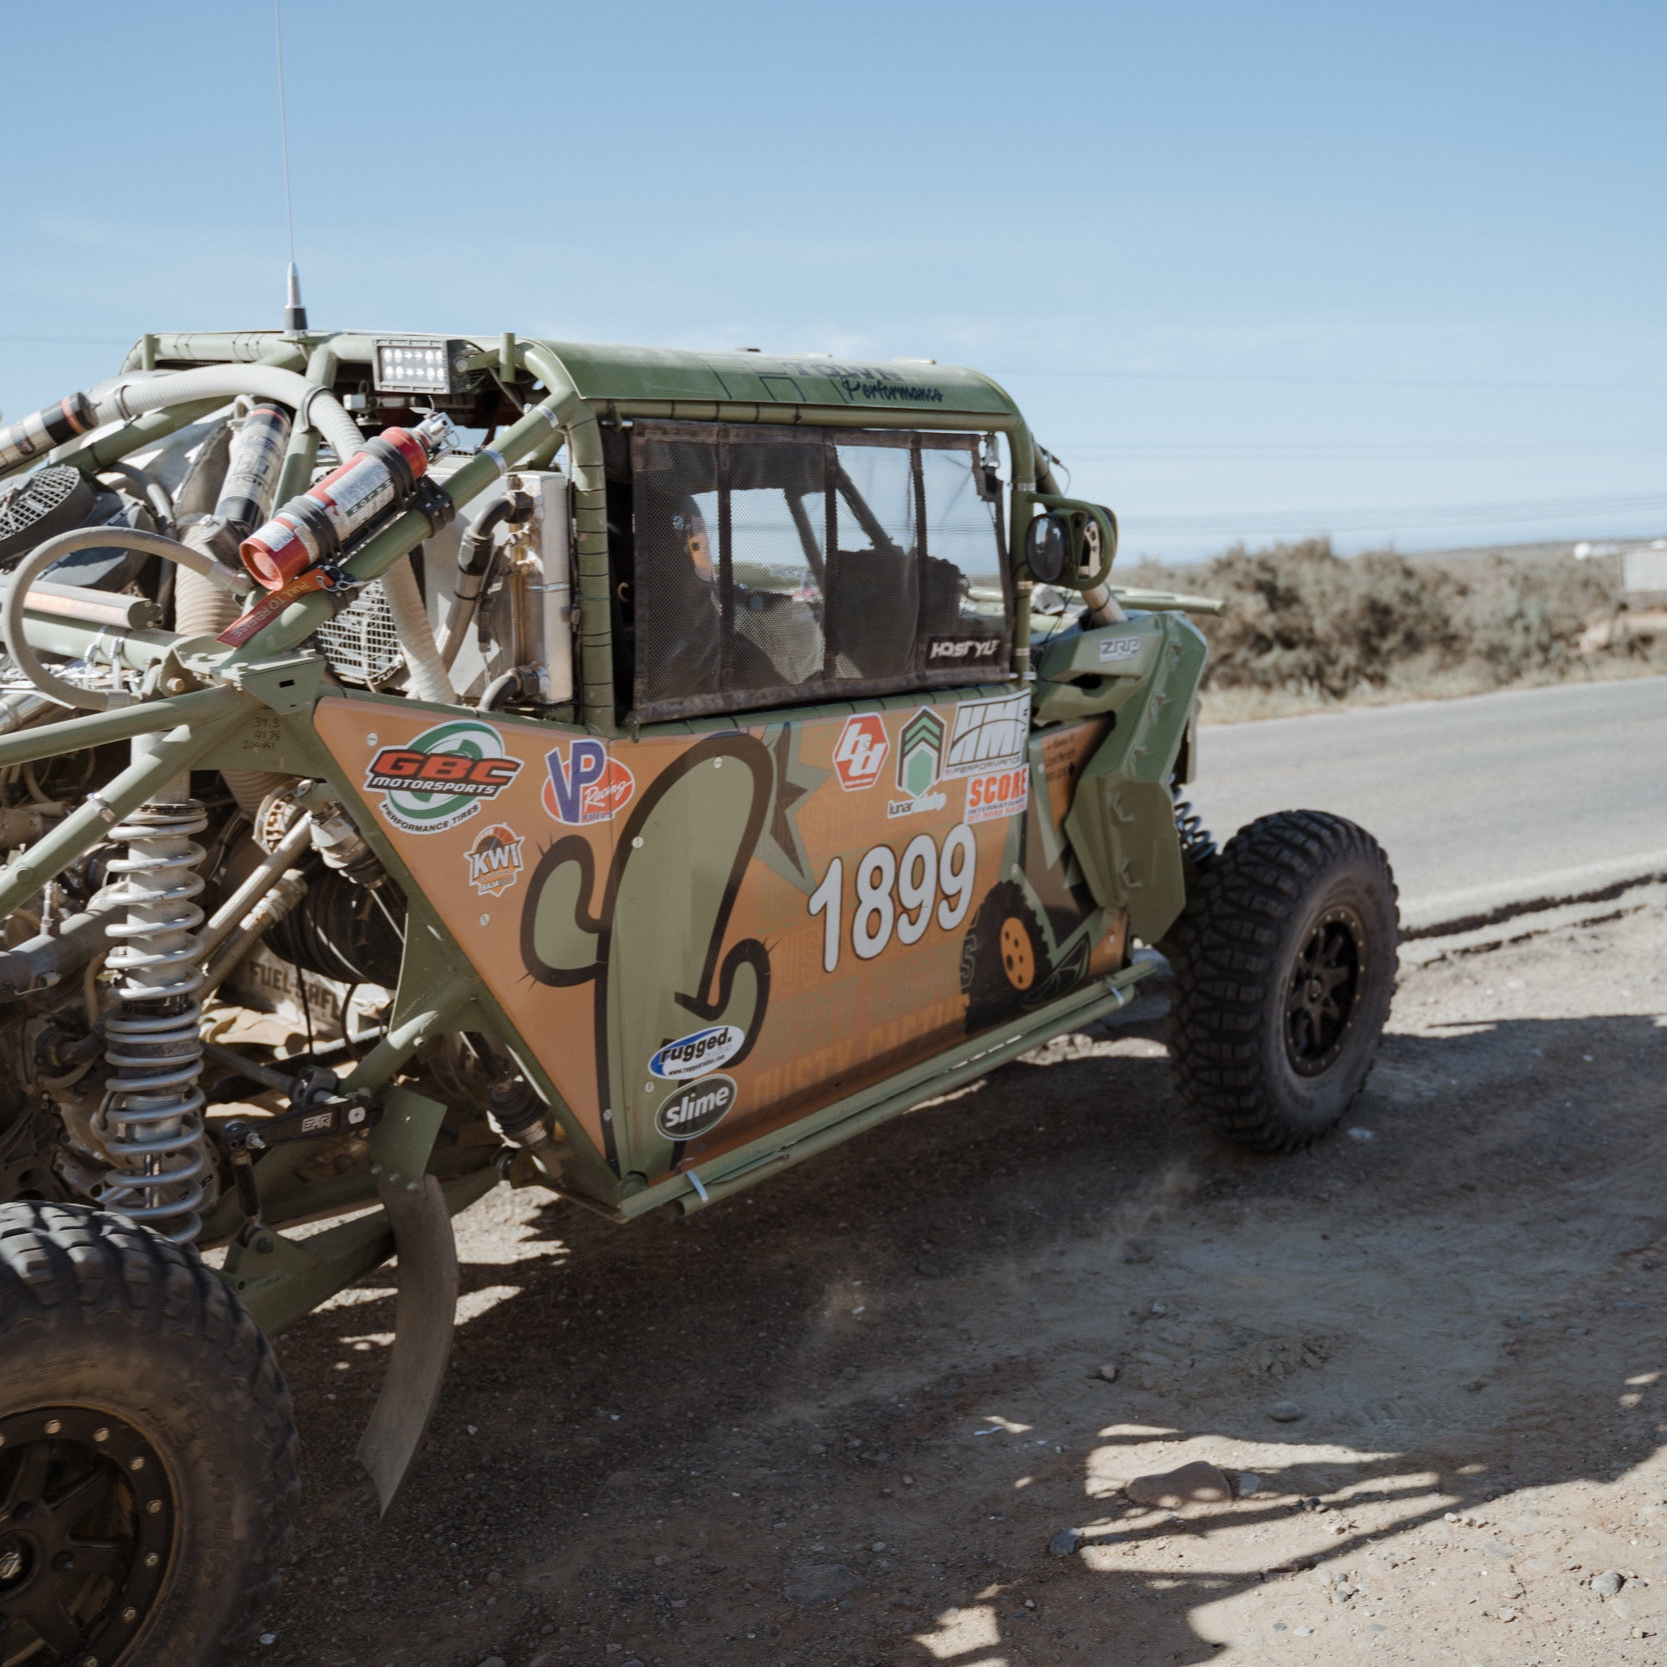 DUSTY CACTUS - 2018 Baja 1000 UTV Pro Stock Unlimited Champions